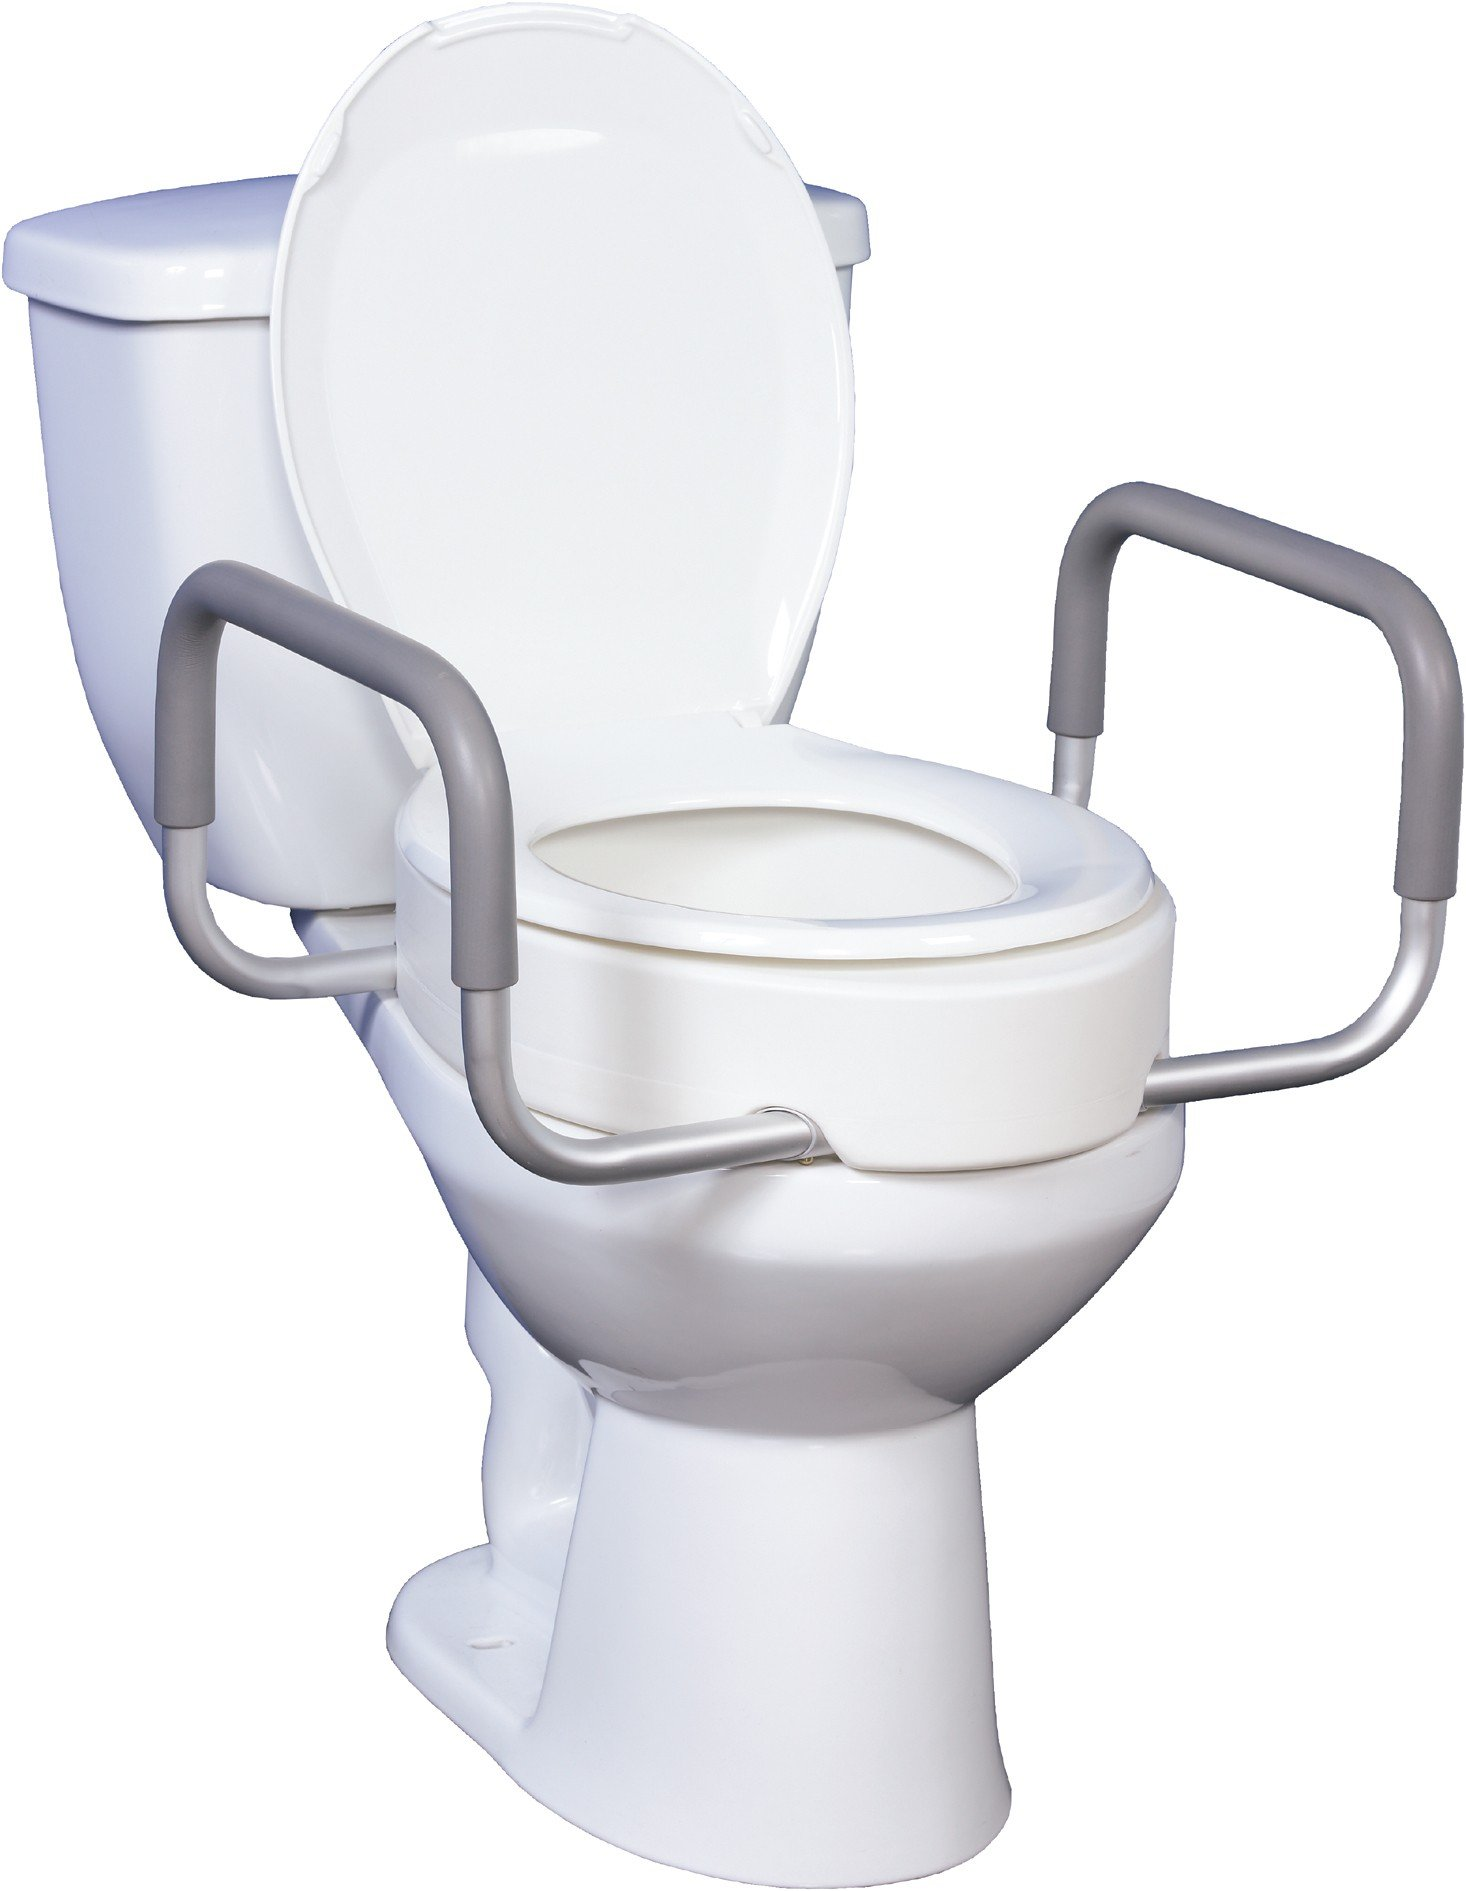 Wc Verhoger Toilet Seat Riser With Removable Arms Bathroom Safety